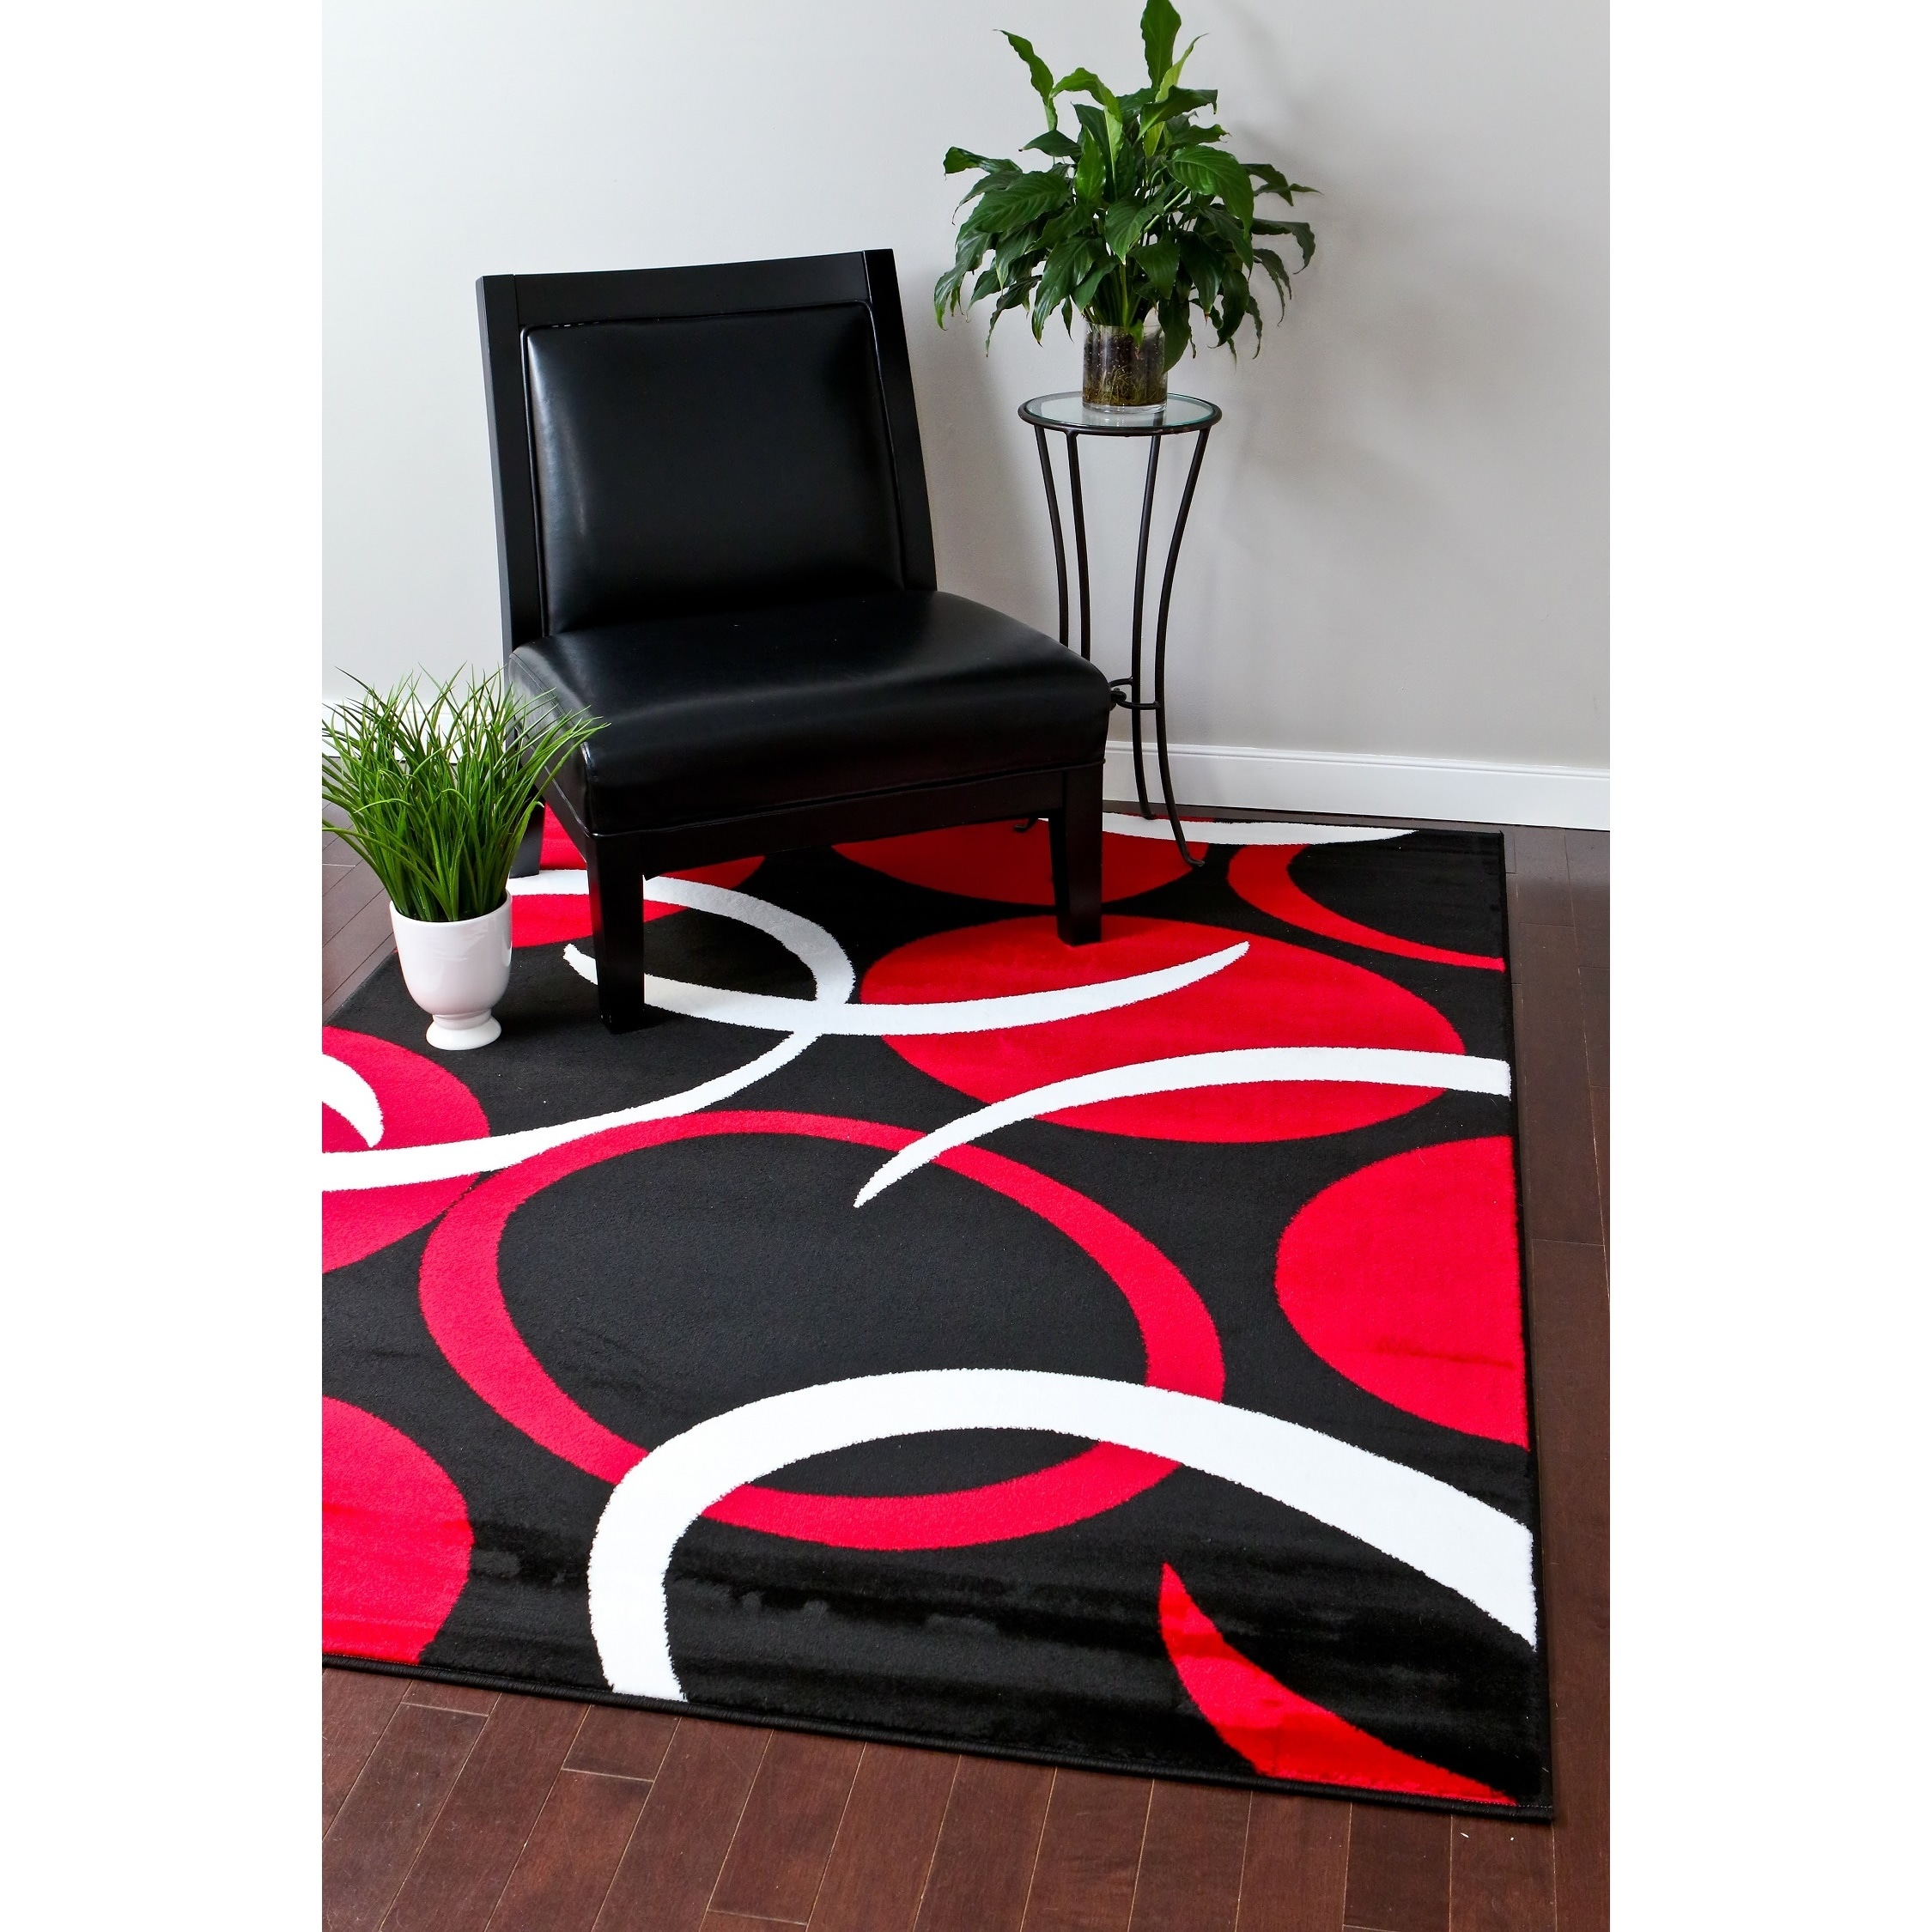 Persian Rugs 1062 Red Swirls Modern Abstract Area Rug 8x11